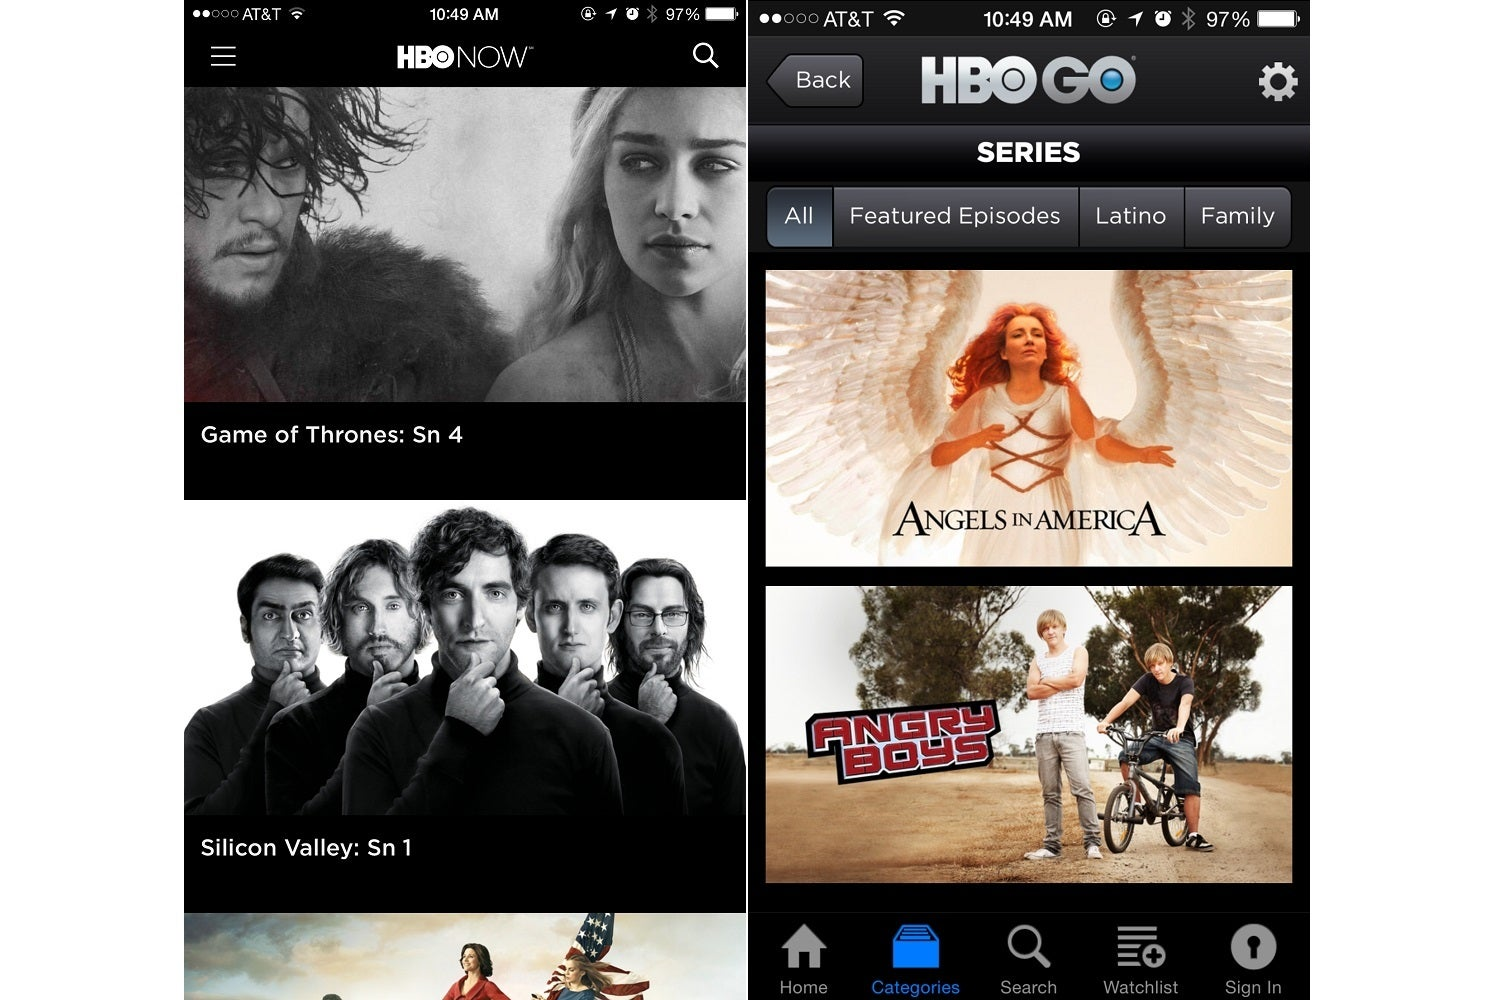 hbo now explained: everything we know, and a few things we don't